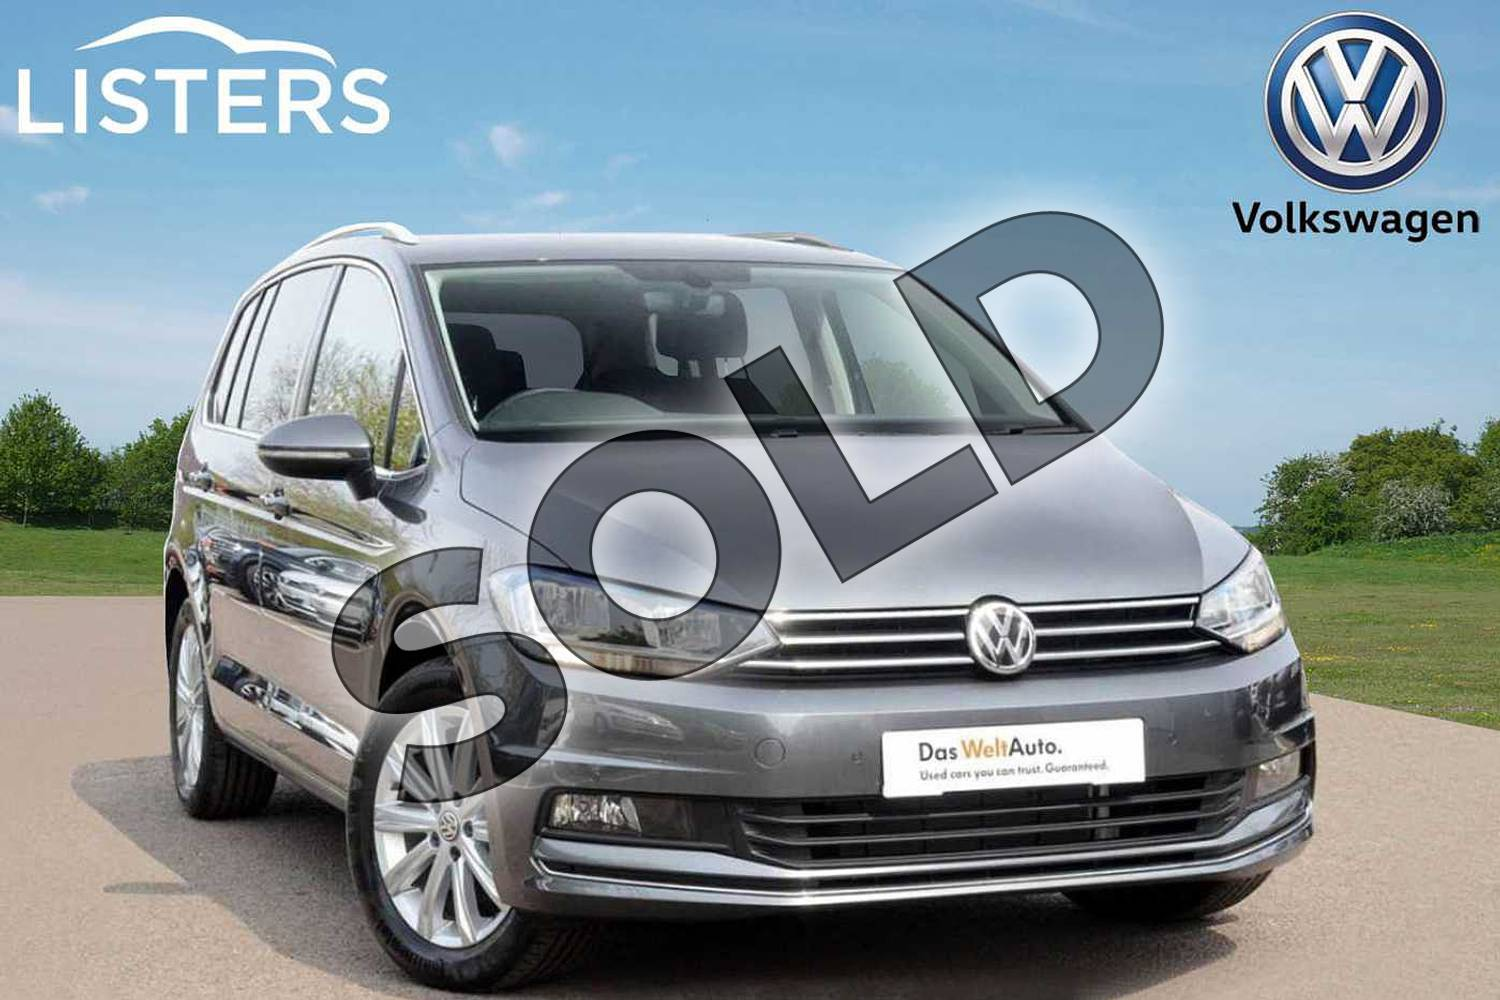 2019 Volkswagen Touran Estate 1.5 TSI EVO SEL 5dr DSG in Indium Grey at Listers Volkswagen Leamington Spa